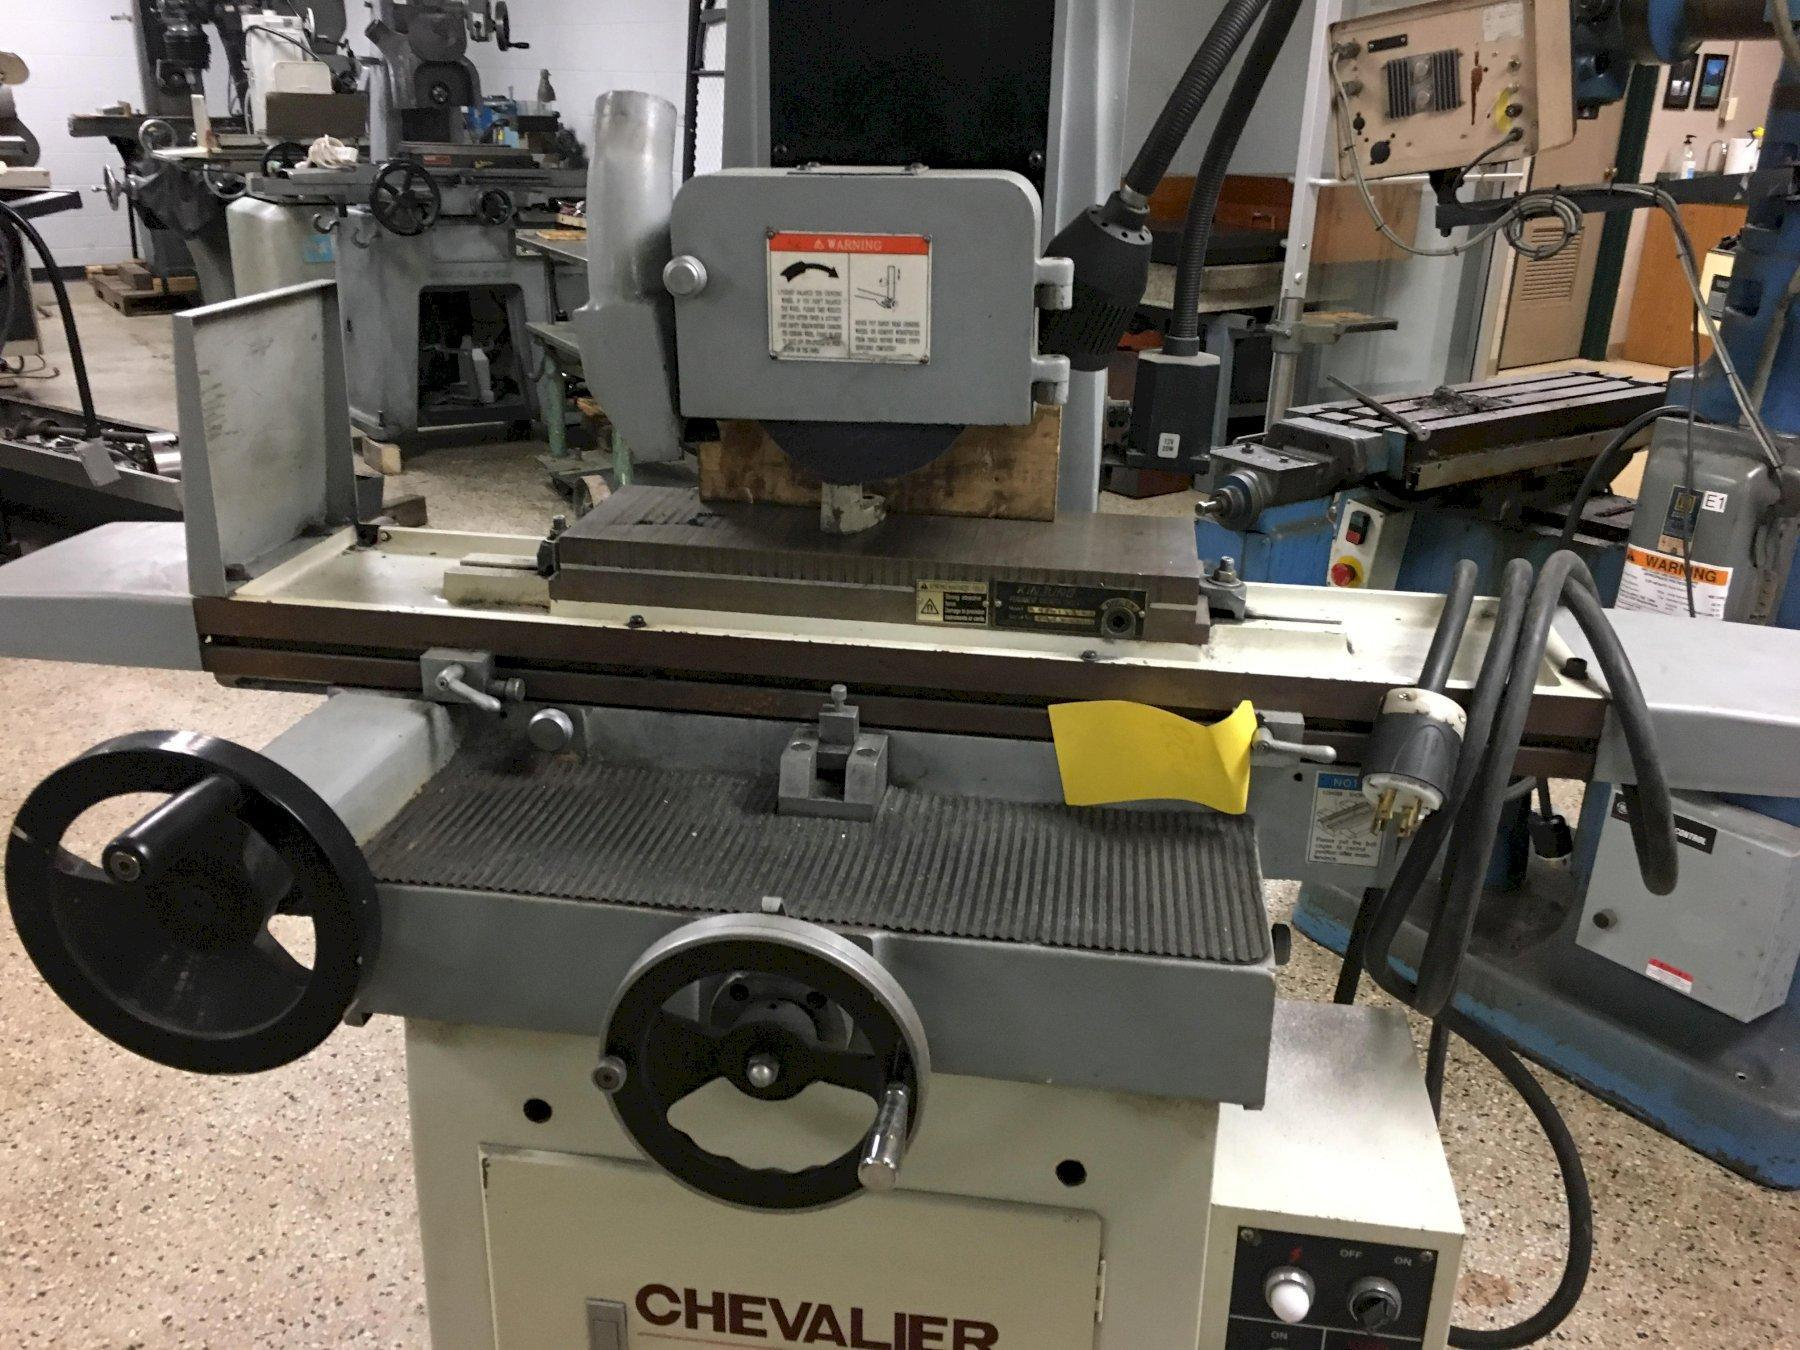 Chevalier Model FSG-618M Hand Feed Ball Roller Table Manual Surface Grinder, S/N A395C007, New 2006.